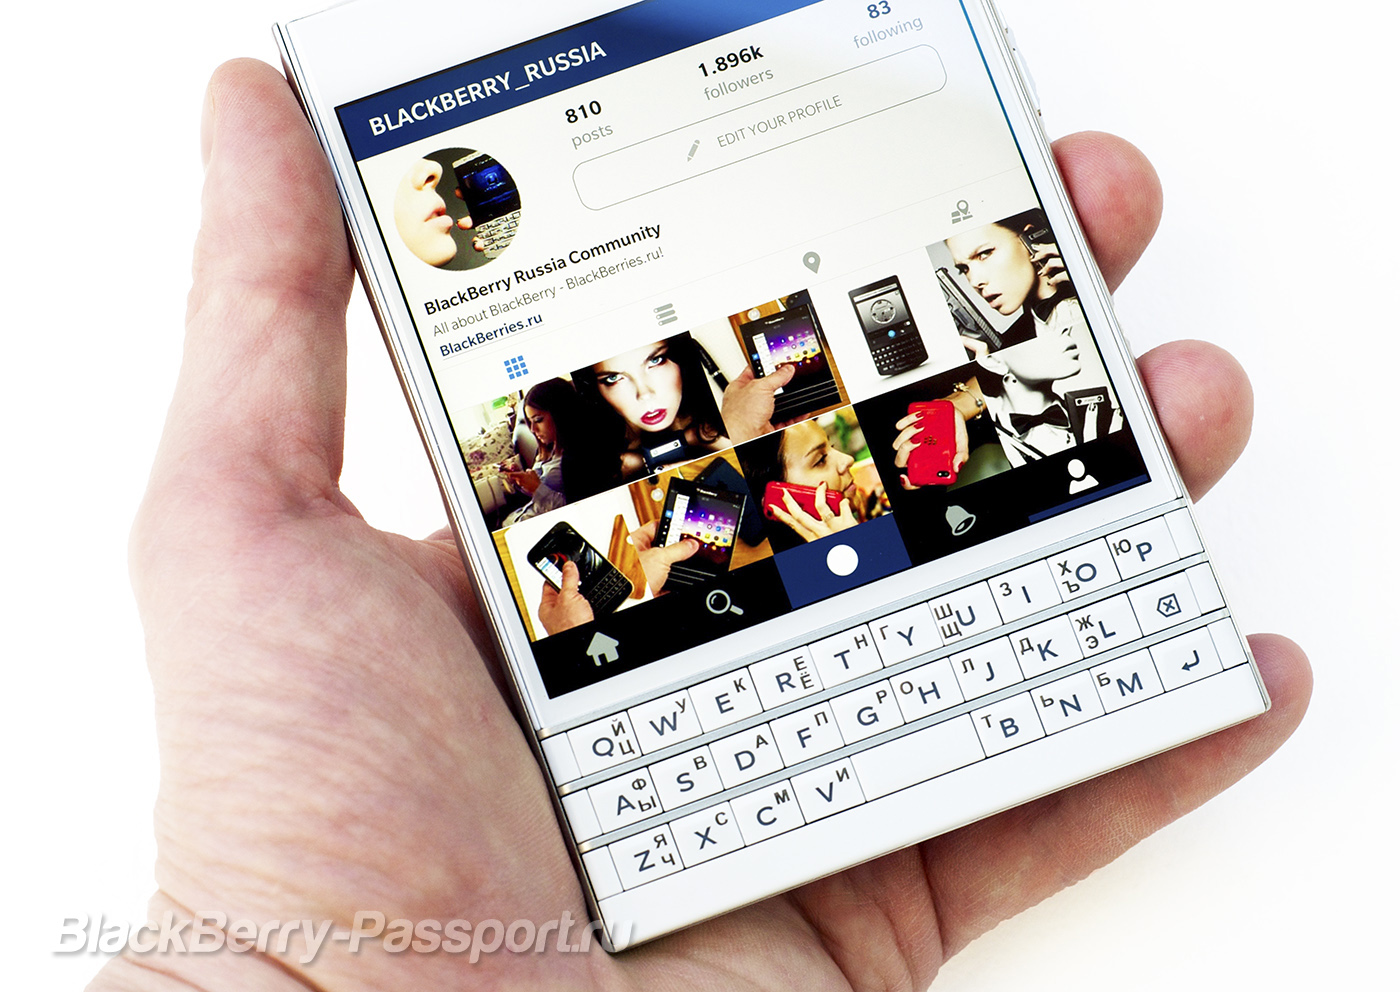 BlackBerry-Passport-BP-20-05-1